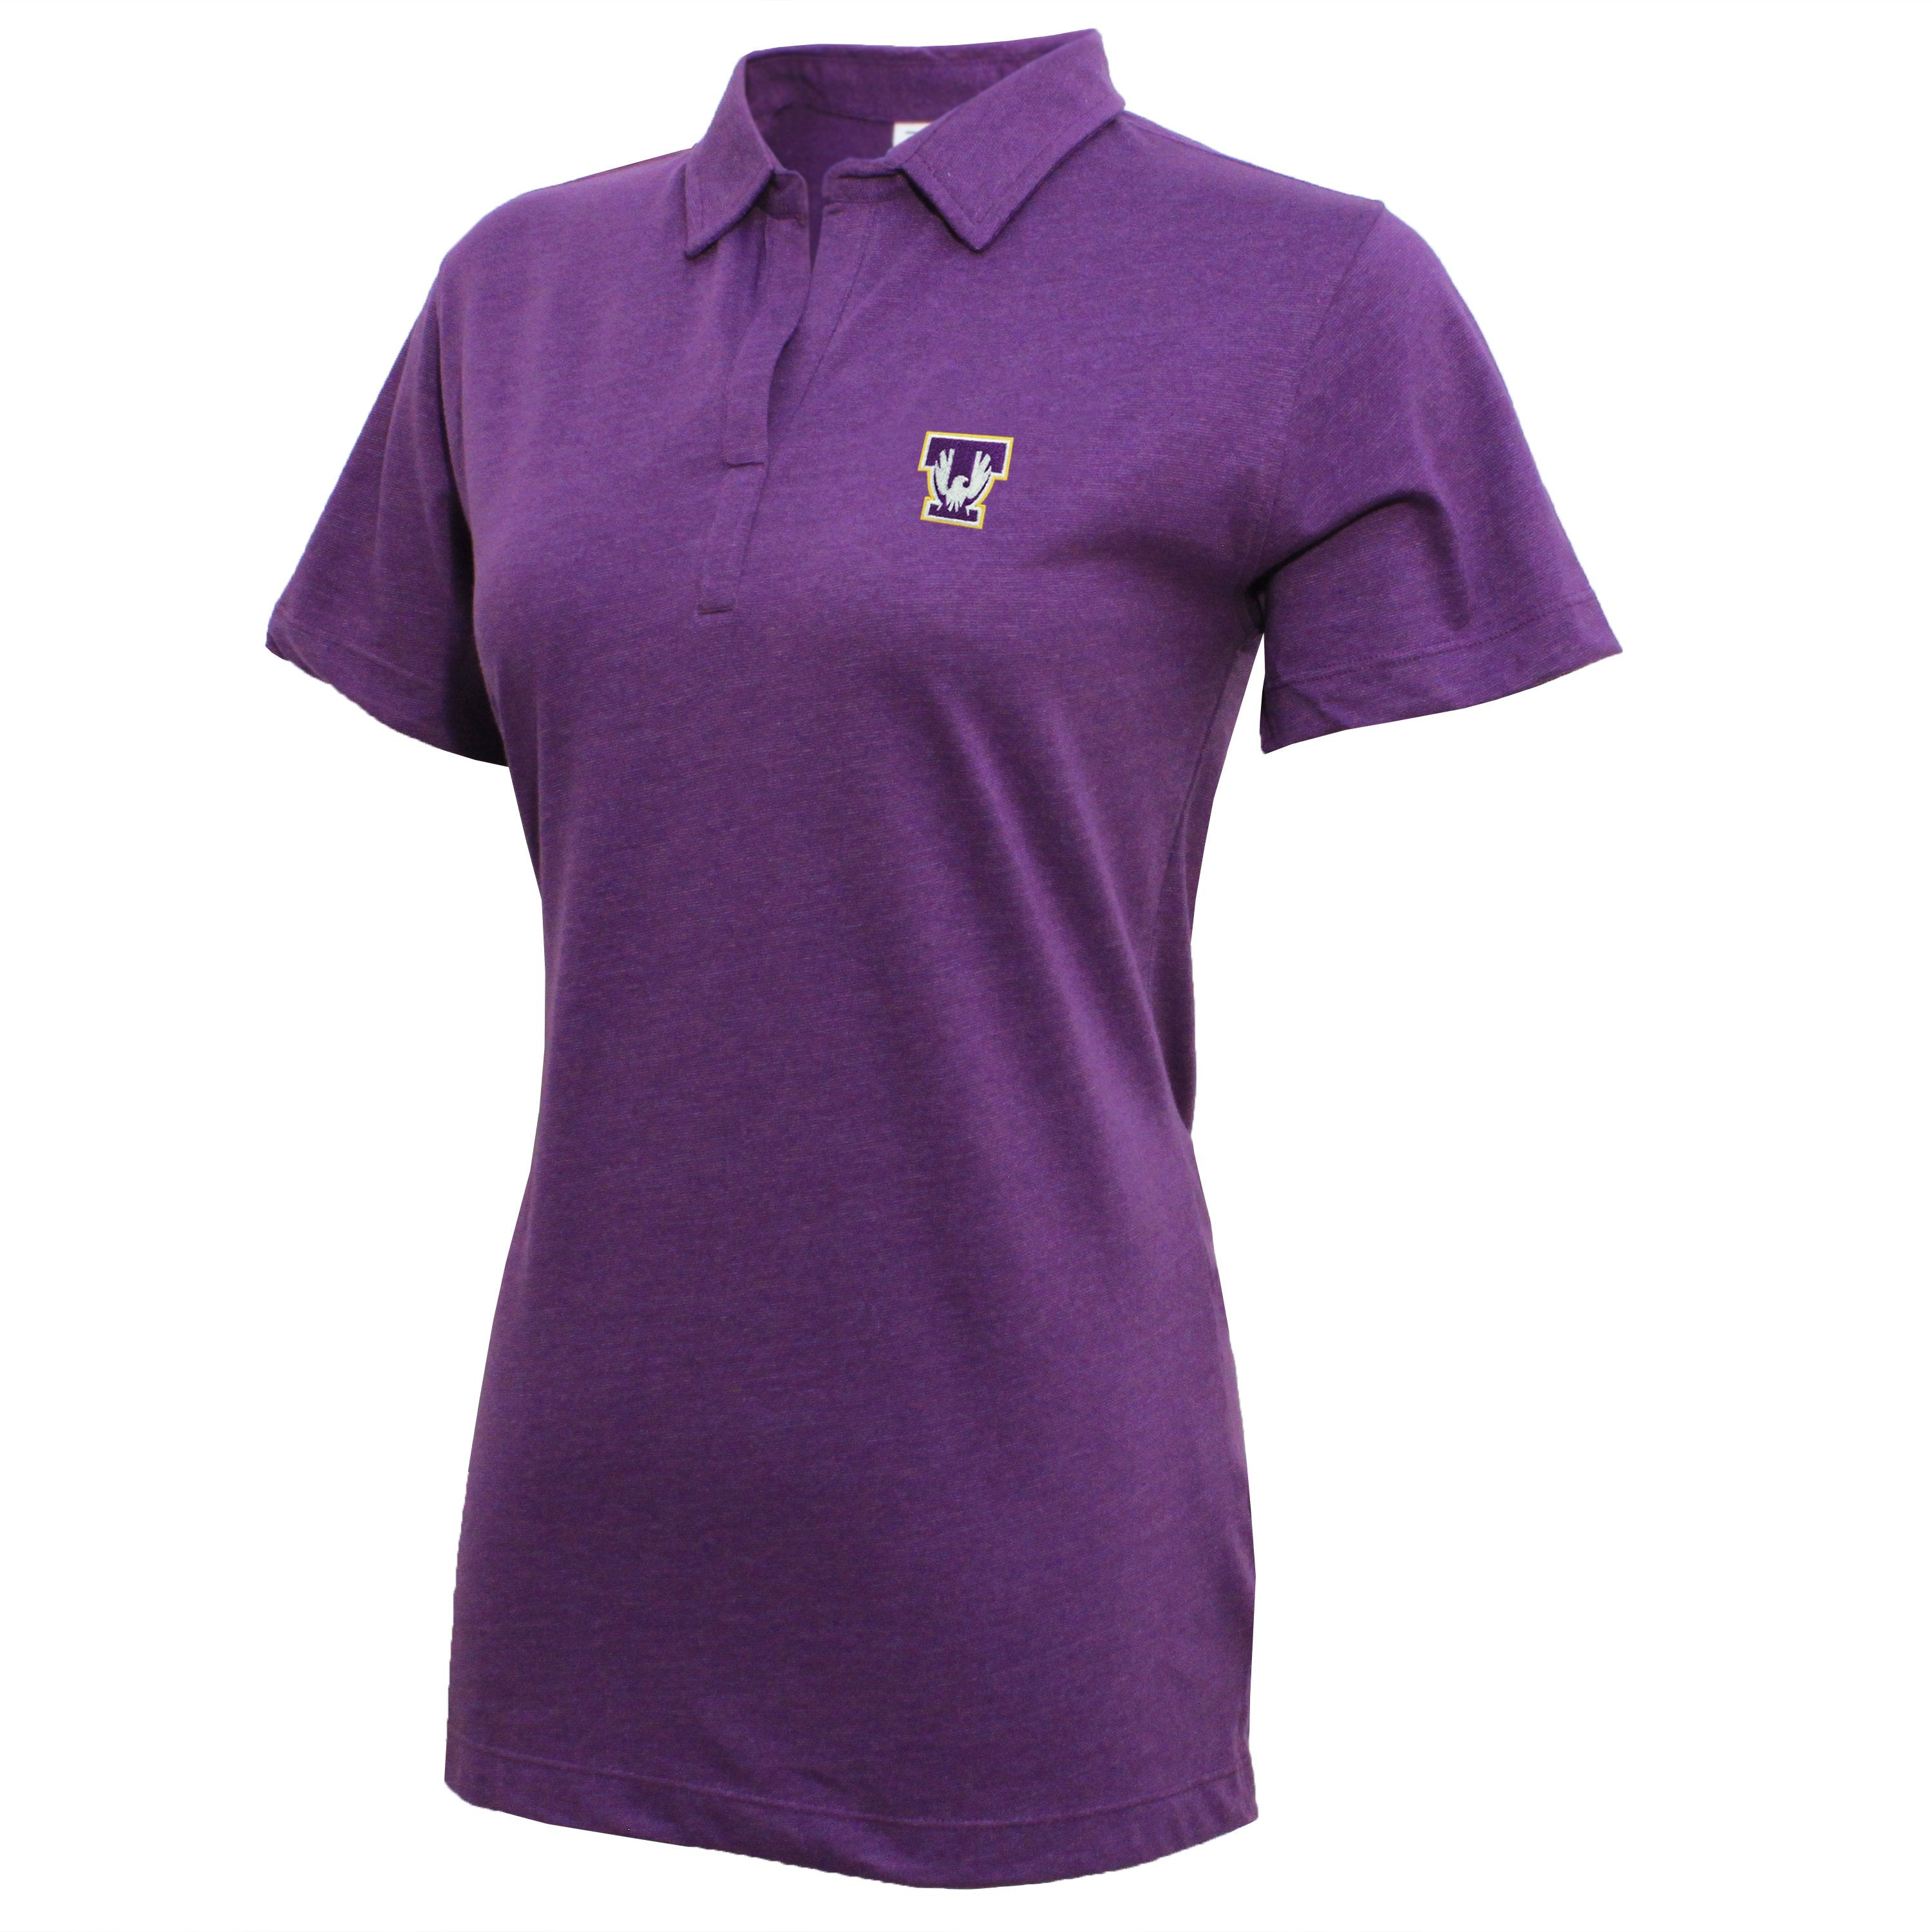 Campus Specialties Tennessee Tech Women's Purple Short Sleeve Polo